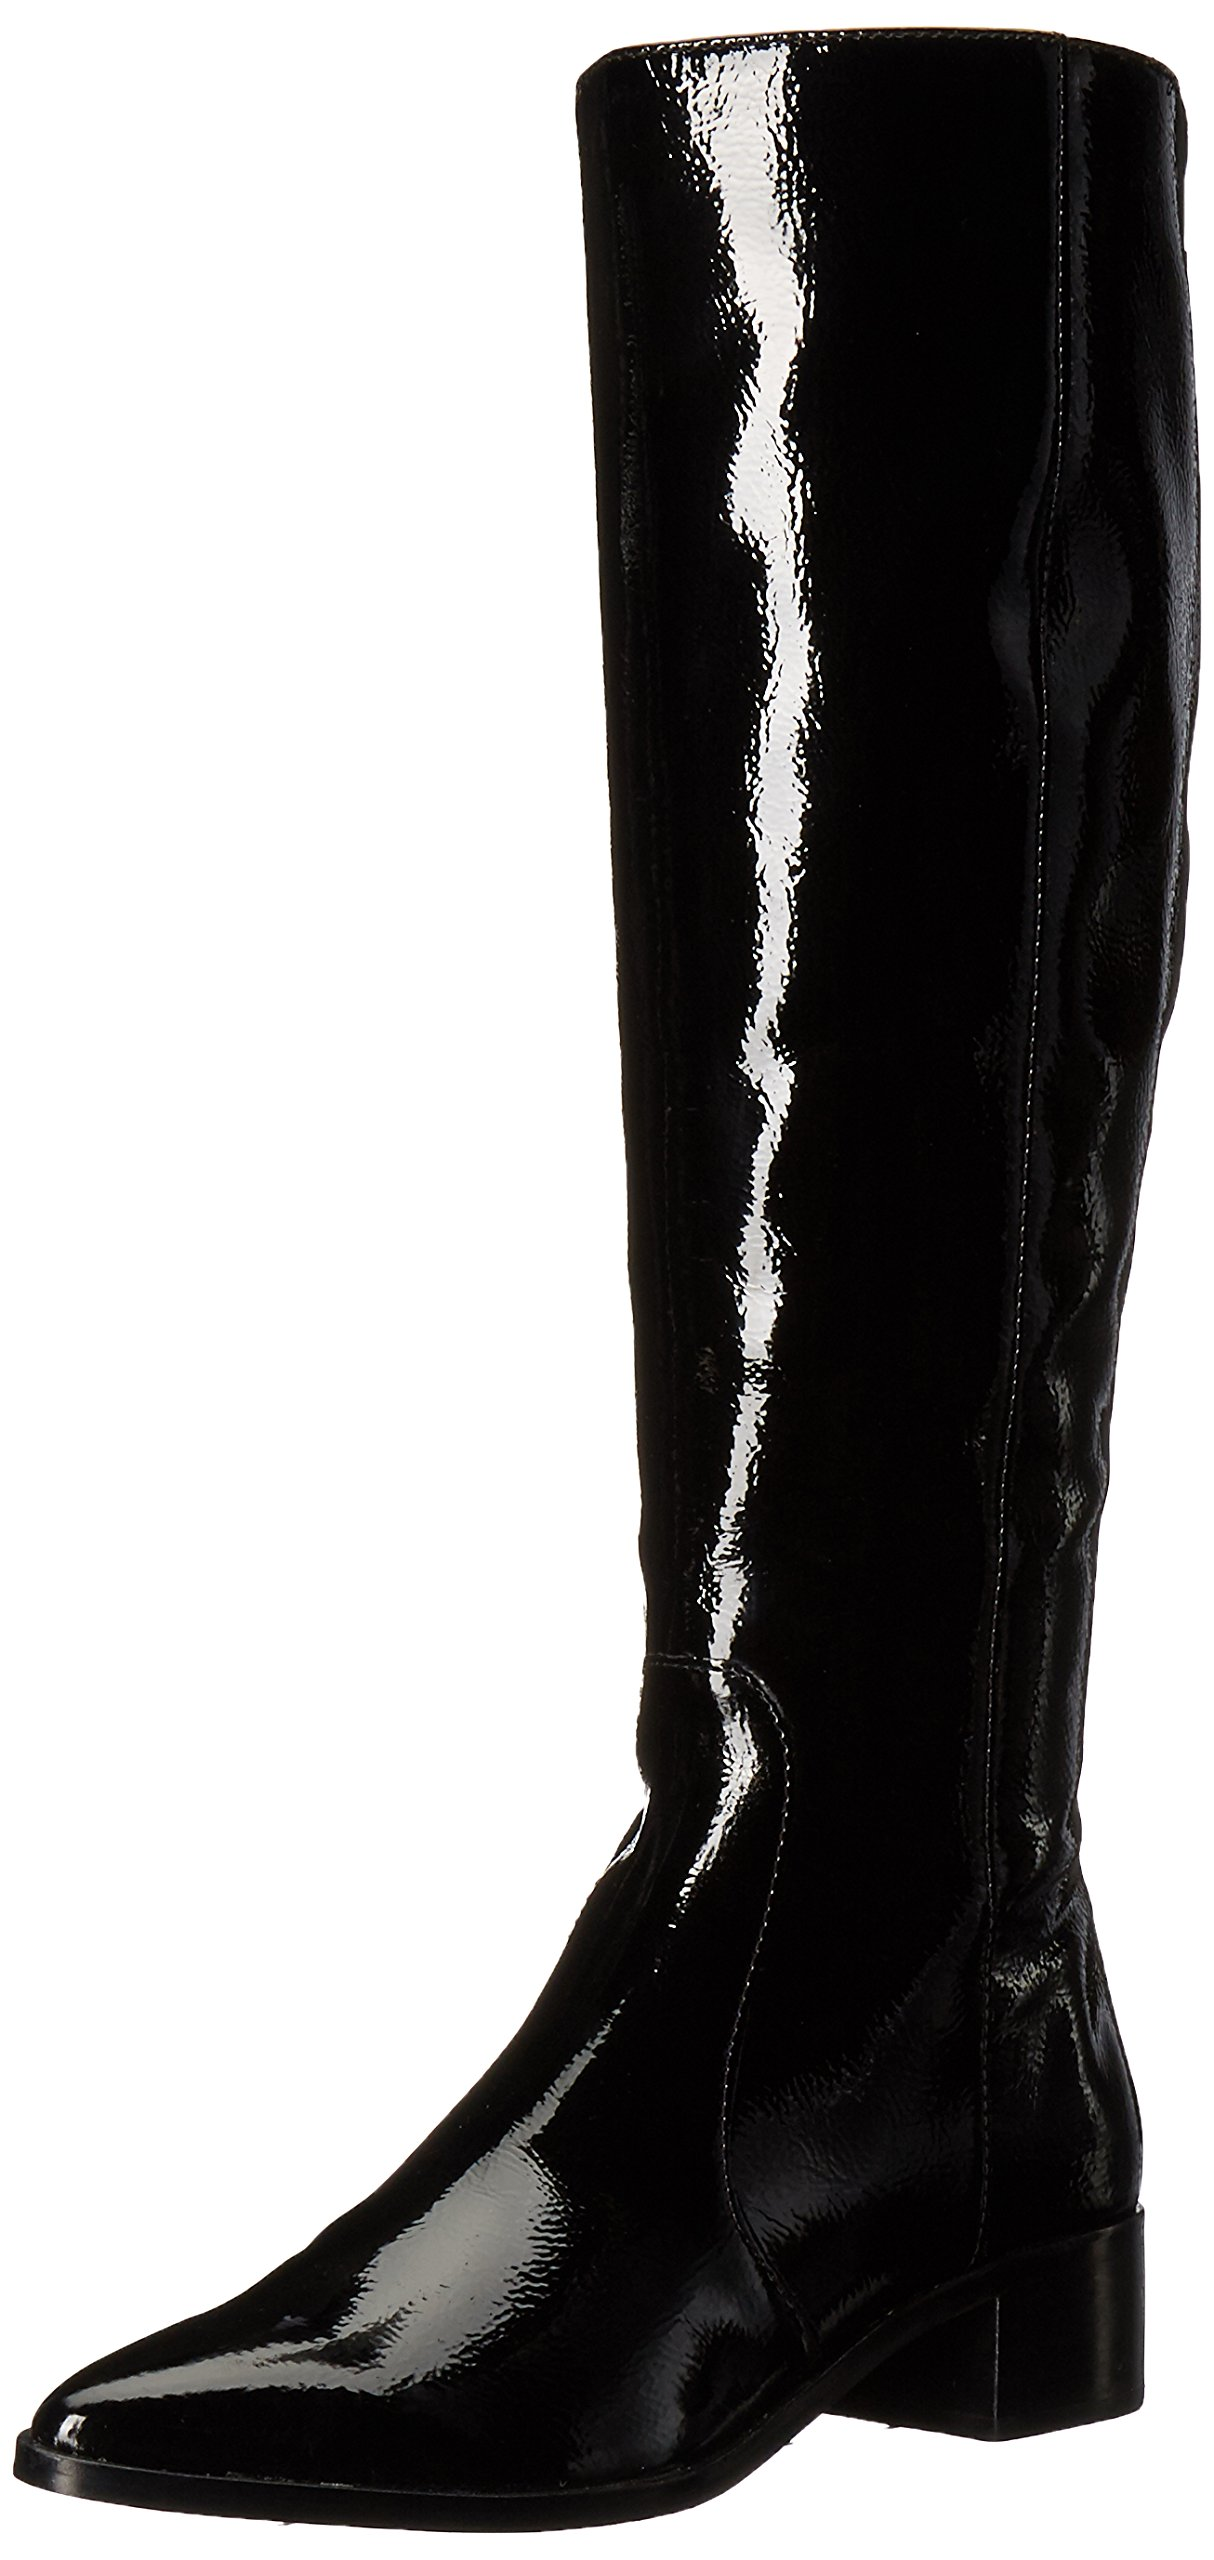 Dolce Vita Women's Morey Fashion Boot, Onyx Patent Stella, 8.5 Medium US